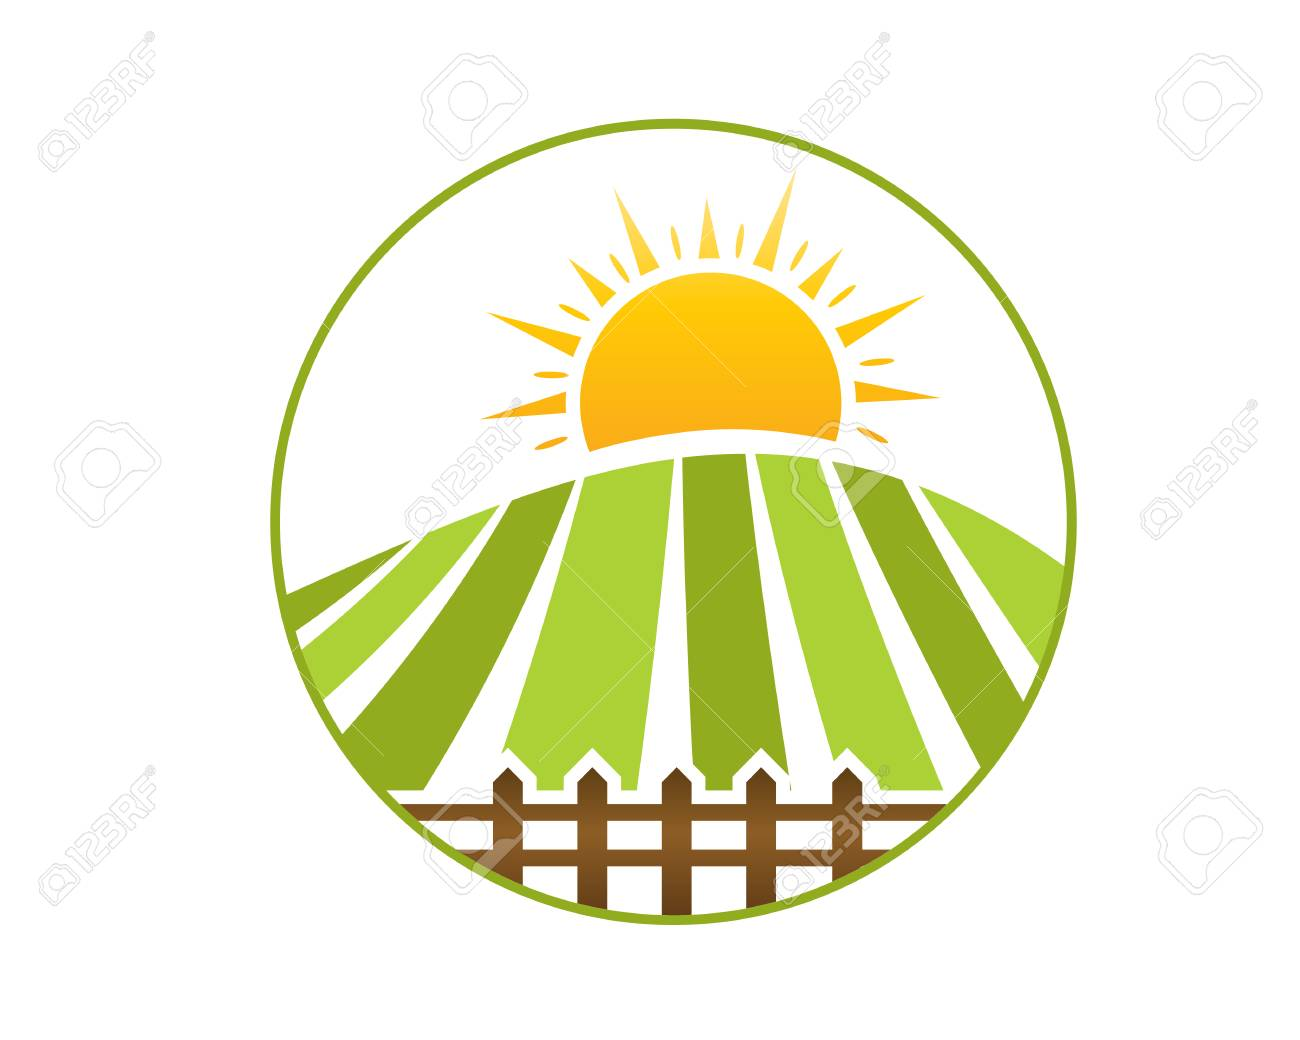 farm field with sun and farm fence within an outline of circle rh 123rf com Free Farm Art Pictures Farm SVG Free